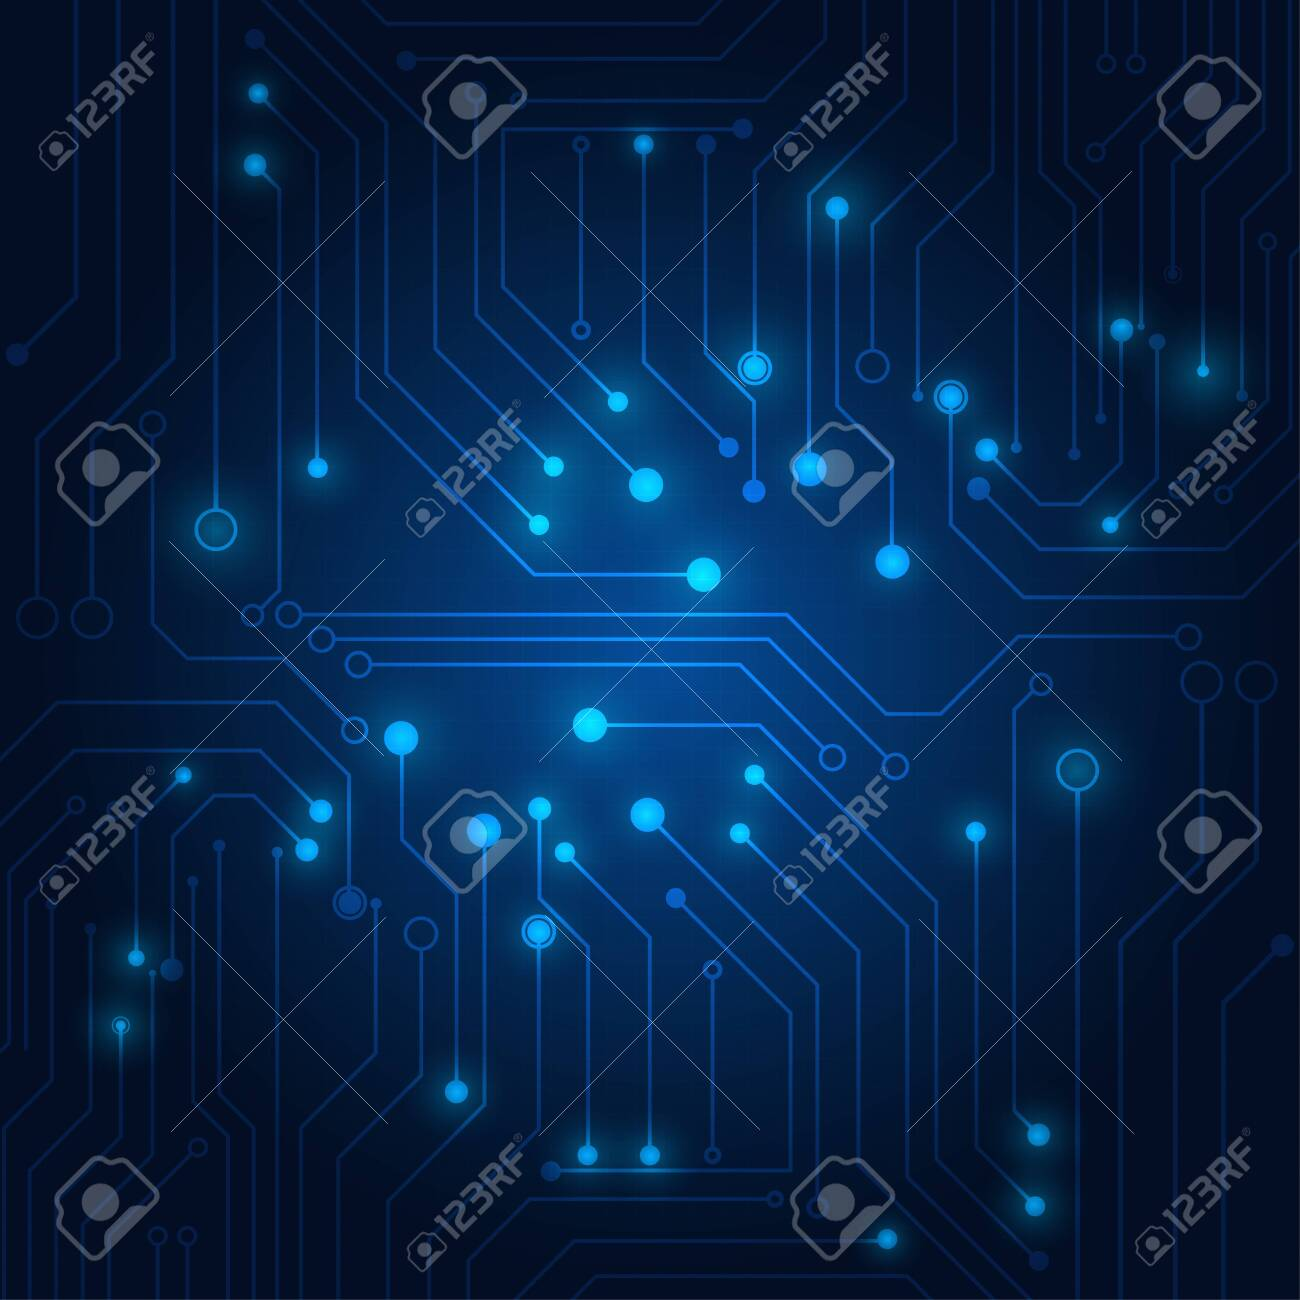 High Tech Technology Geometric And Blue Background With Digital